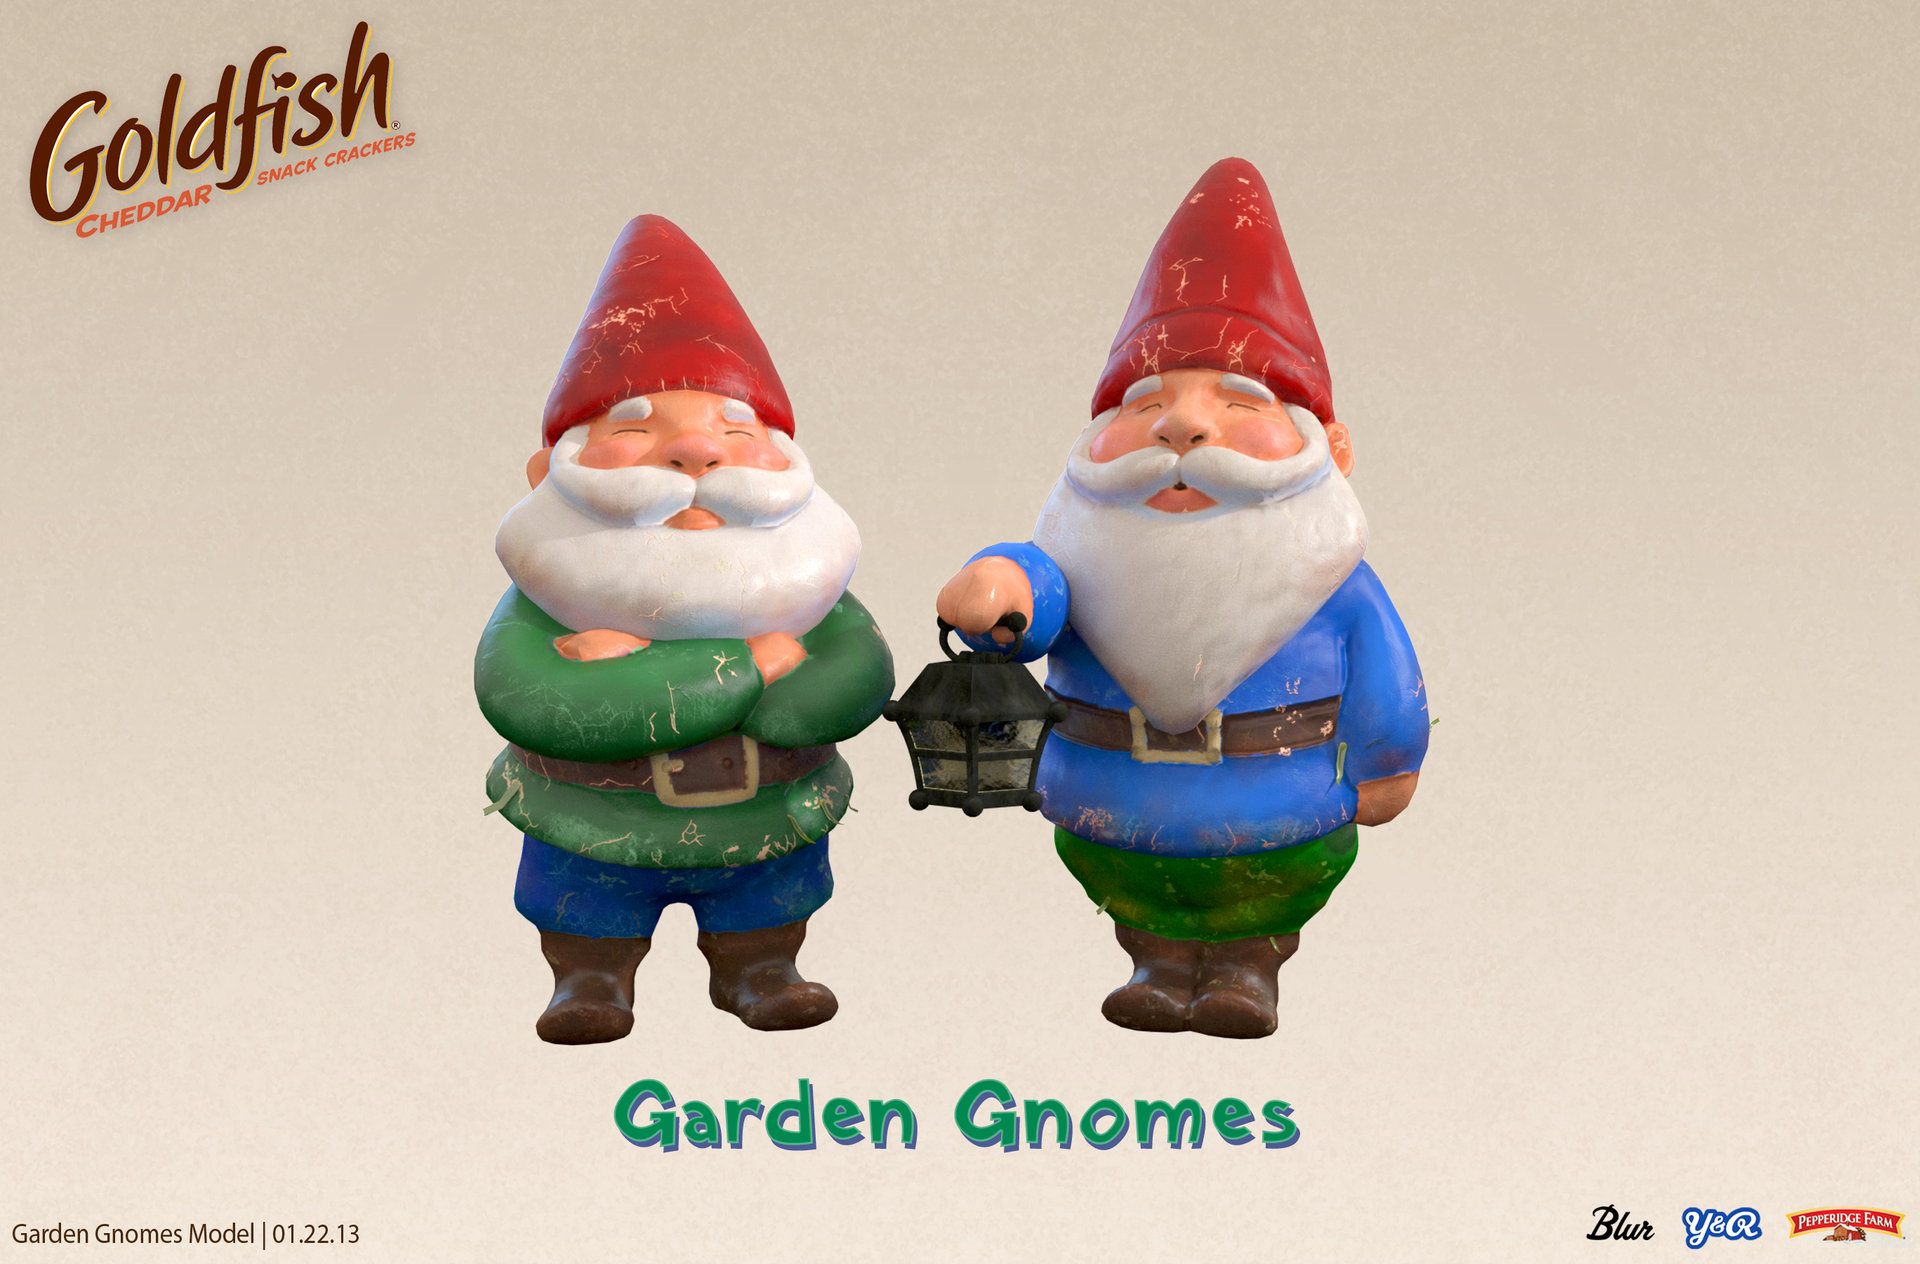 Goldfish s6 model gnomes 2013 01 22